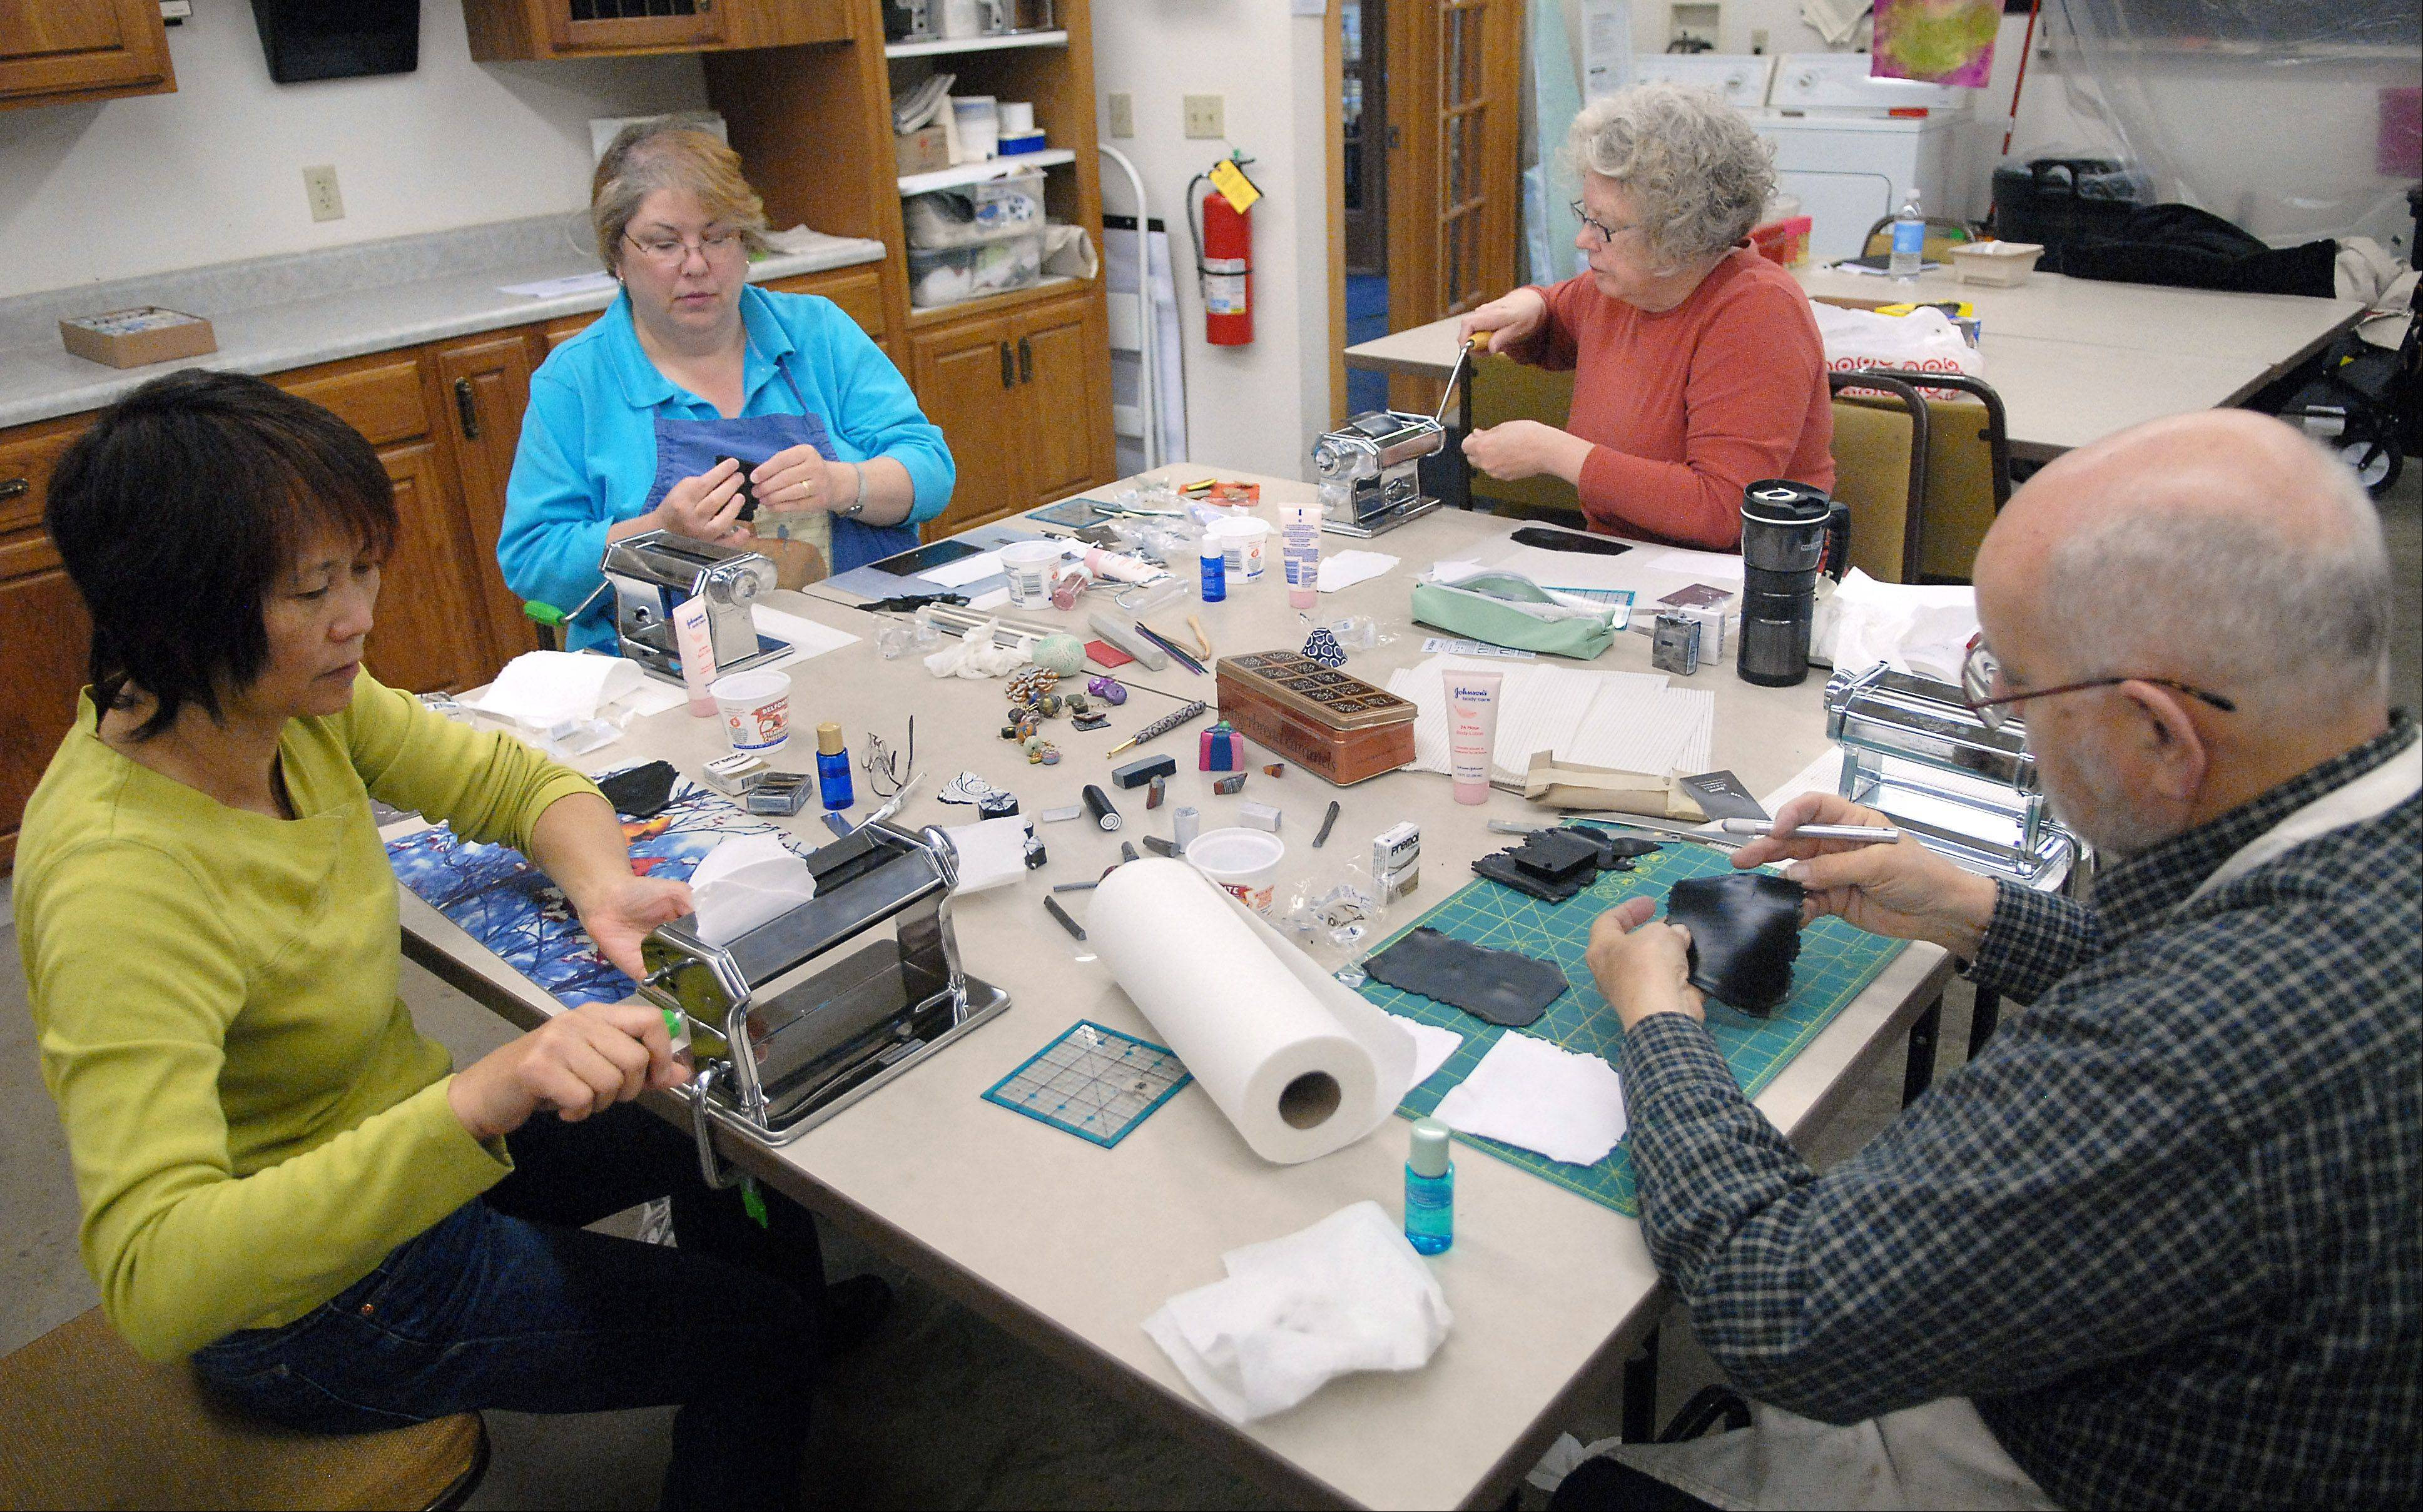 A variety of art classes are offered at the Fine Line Creative Arts Center in St. Charles.